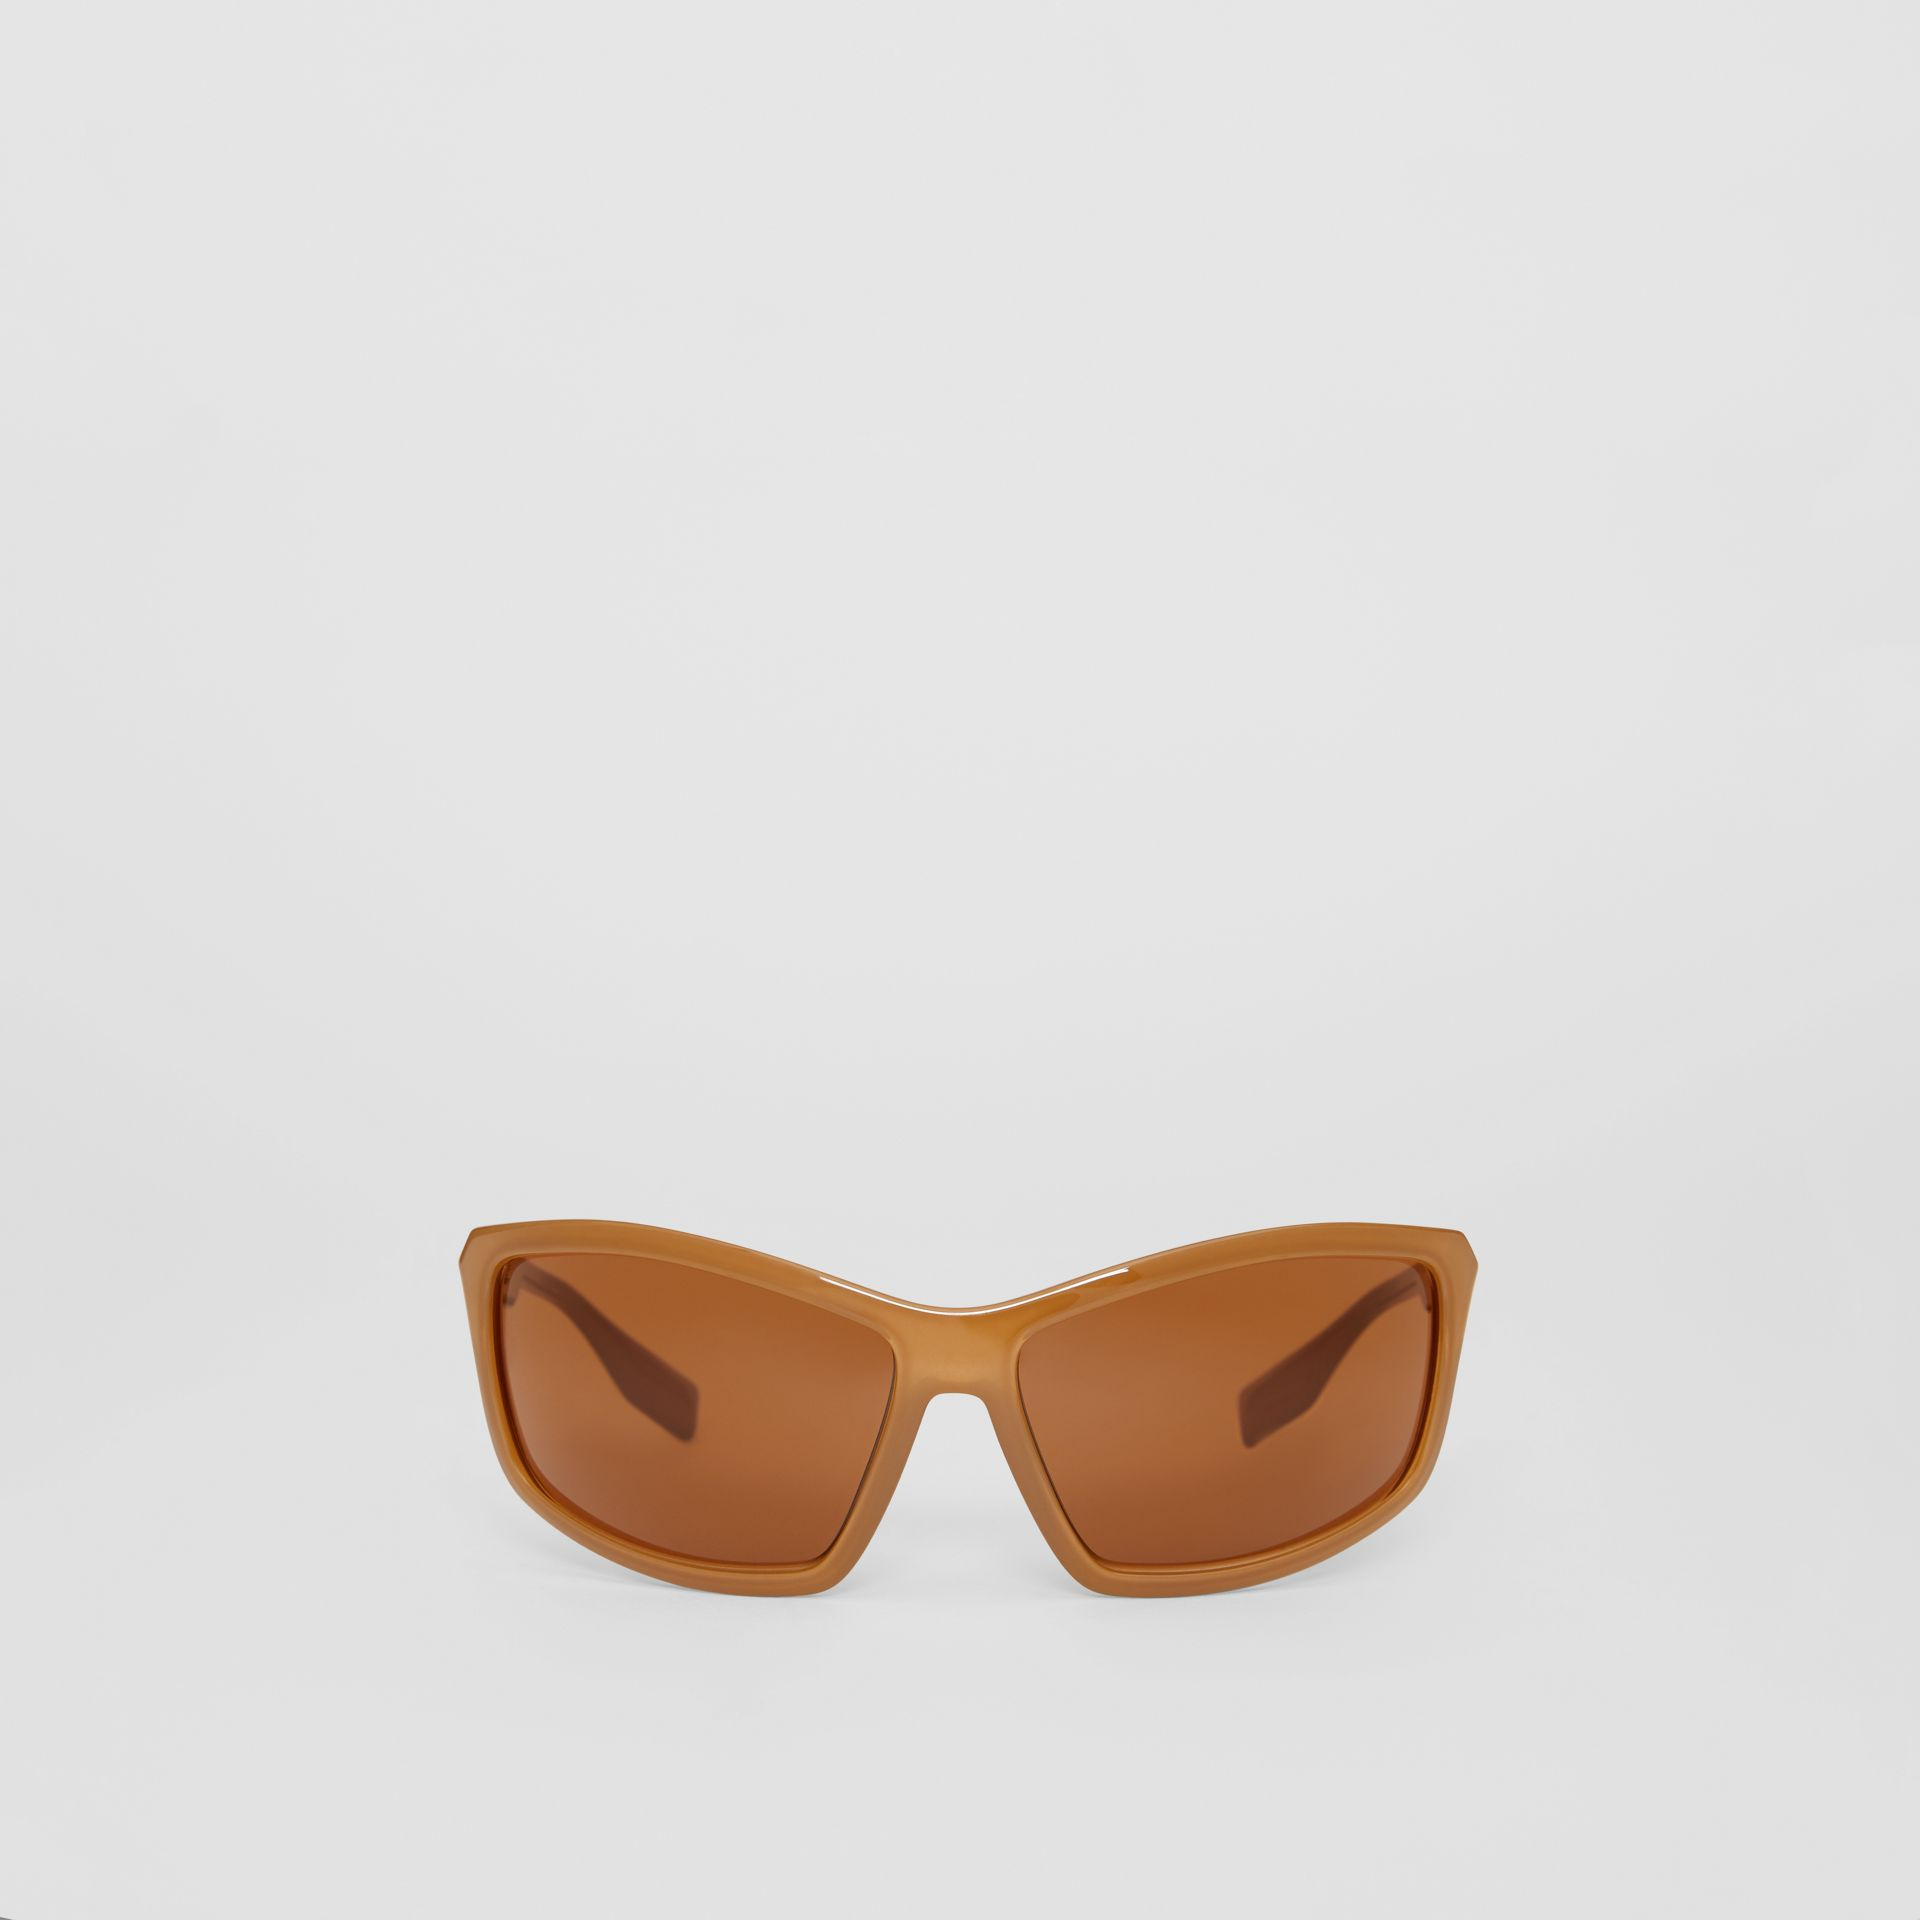 Wrap Frame Sunglasses in Amber Tortoiseshell - Men | Burberry - gallery image 0